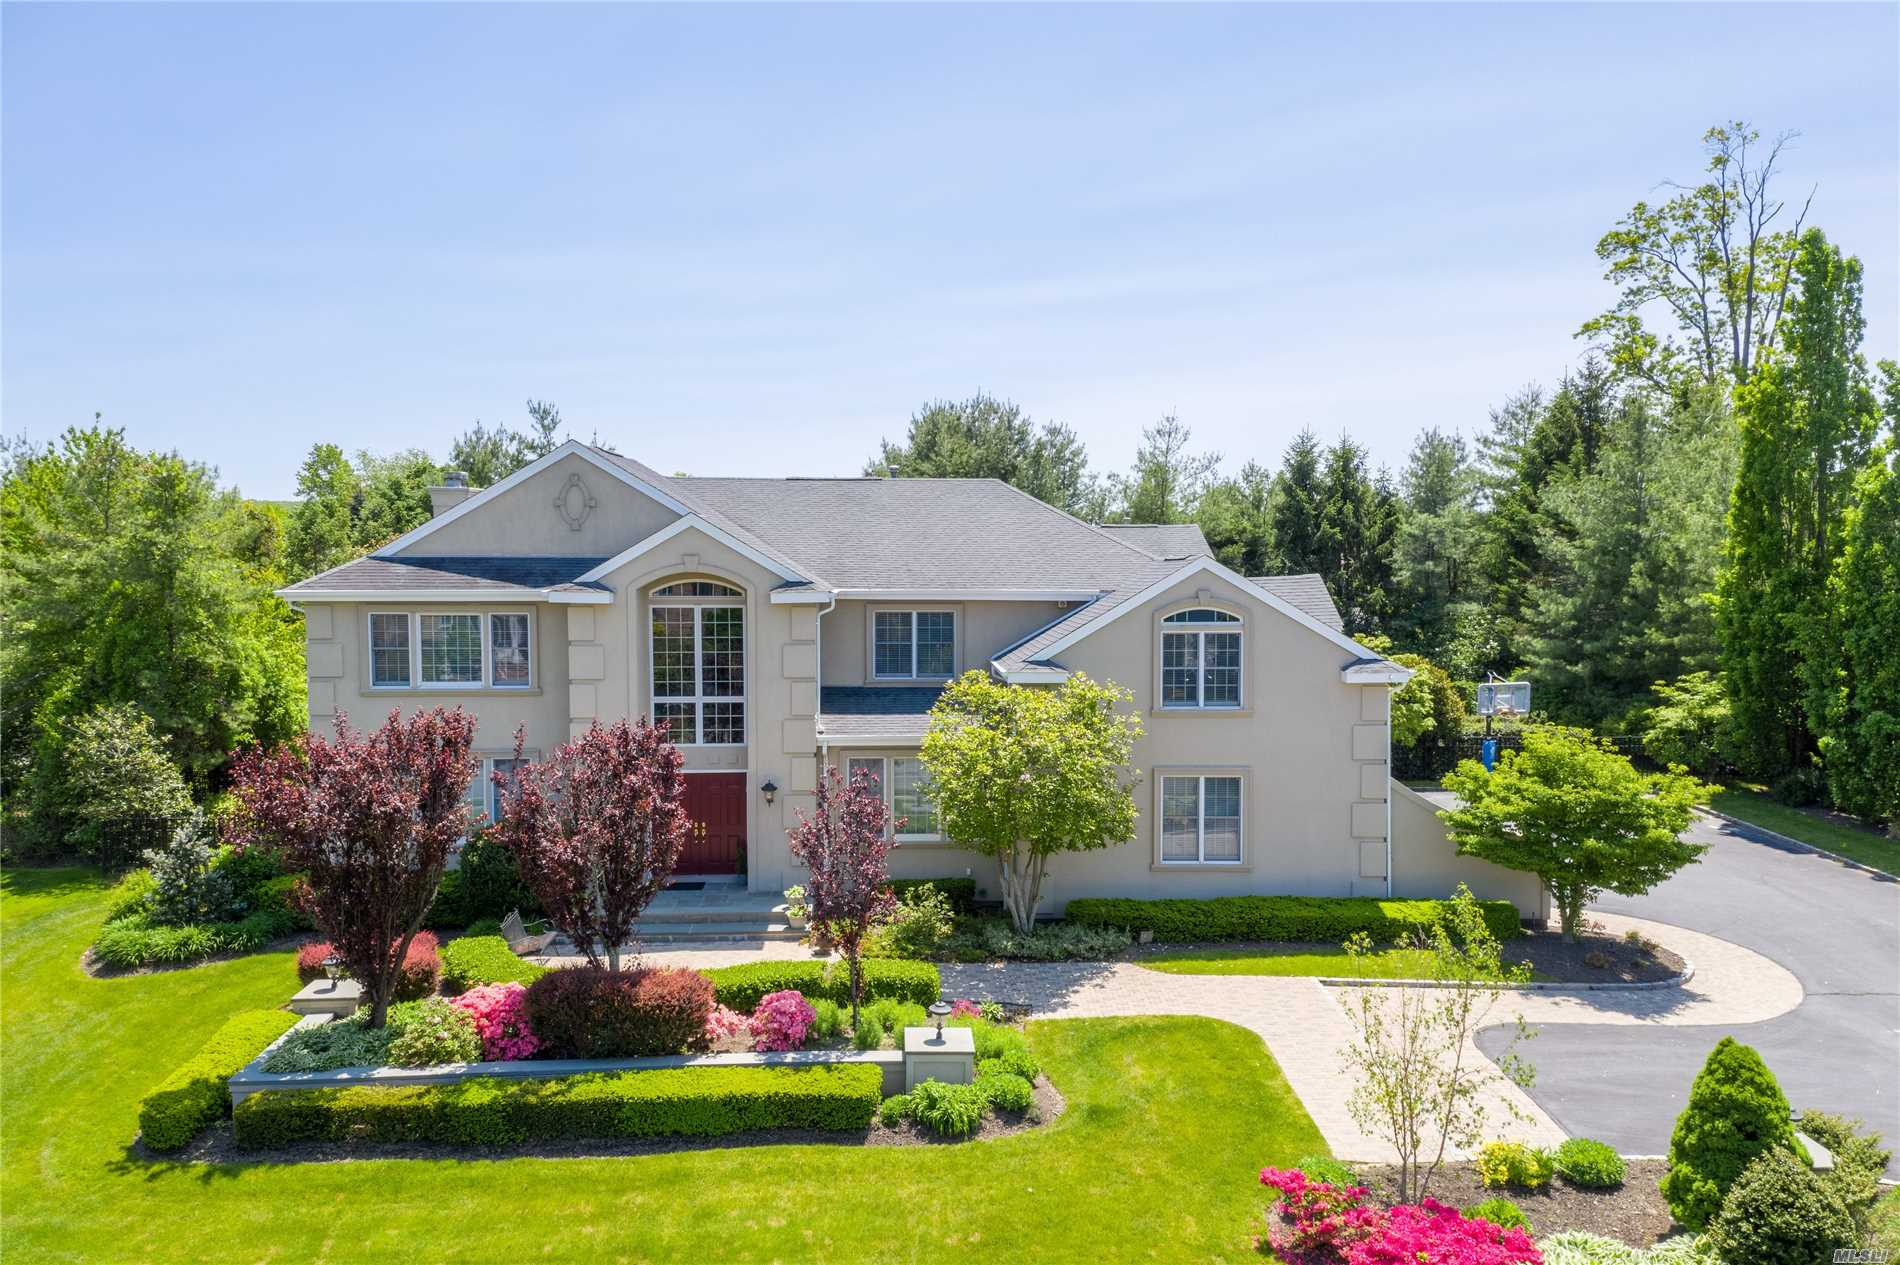 Low Taxes! Elegant CH Col in Rolling Hills 2 Est. 5 Spacious Bdrms and 3.5 Bths. Impressive 2 Story EF. Hrdwd Flrs. Entertain W/Easy Flow from Lrg Fam Rm- W/ Gas Fplce- to Sprawling EIK W/Beautiful Lt Cabinets & Gran Counter tops. Sep Lndry Rm/Mud Rm with Access To Yard, Plus 5th Bdrm & Bth Off Kit. Upper level W/ Mstr Suite W/ Tray Ceiling & Stunning Mrble Bth, 3 More Bdrms & FBth. Fab Bonus Rm. Full Bsmt. Landscaped 1/2 acre Prop W/ IG Htd Pool. Brick/ Bluestone Patio. 3 Car Gar. Syosset SD.